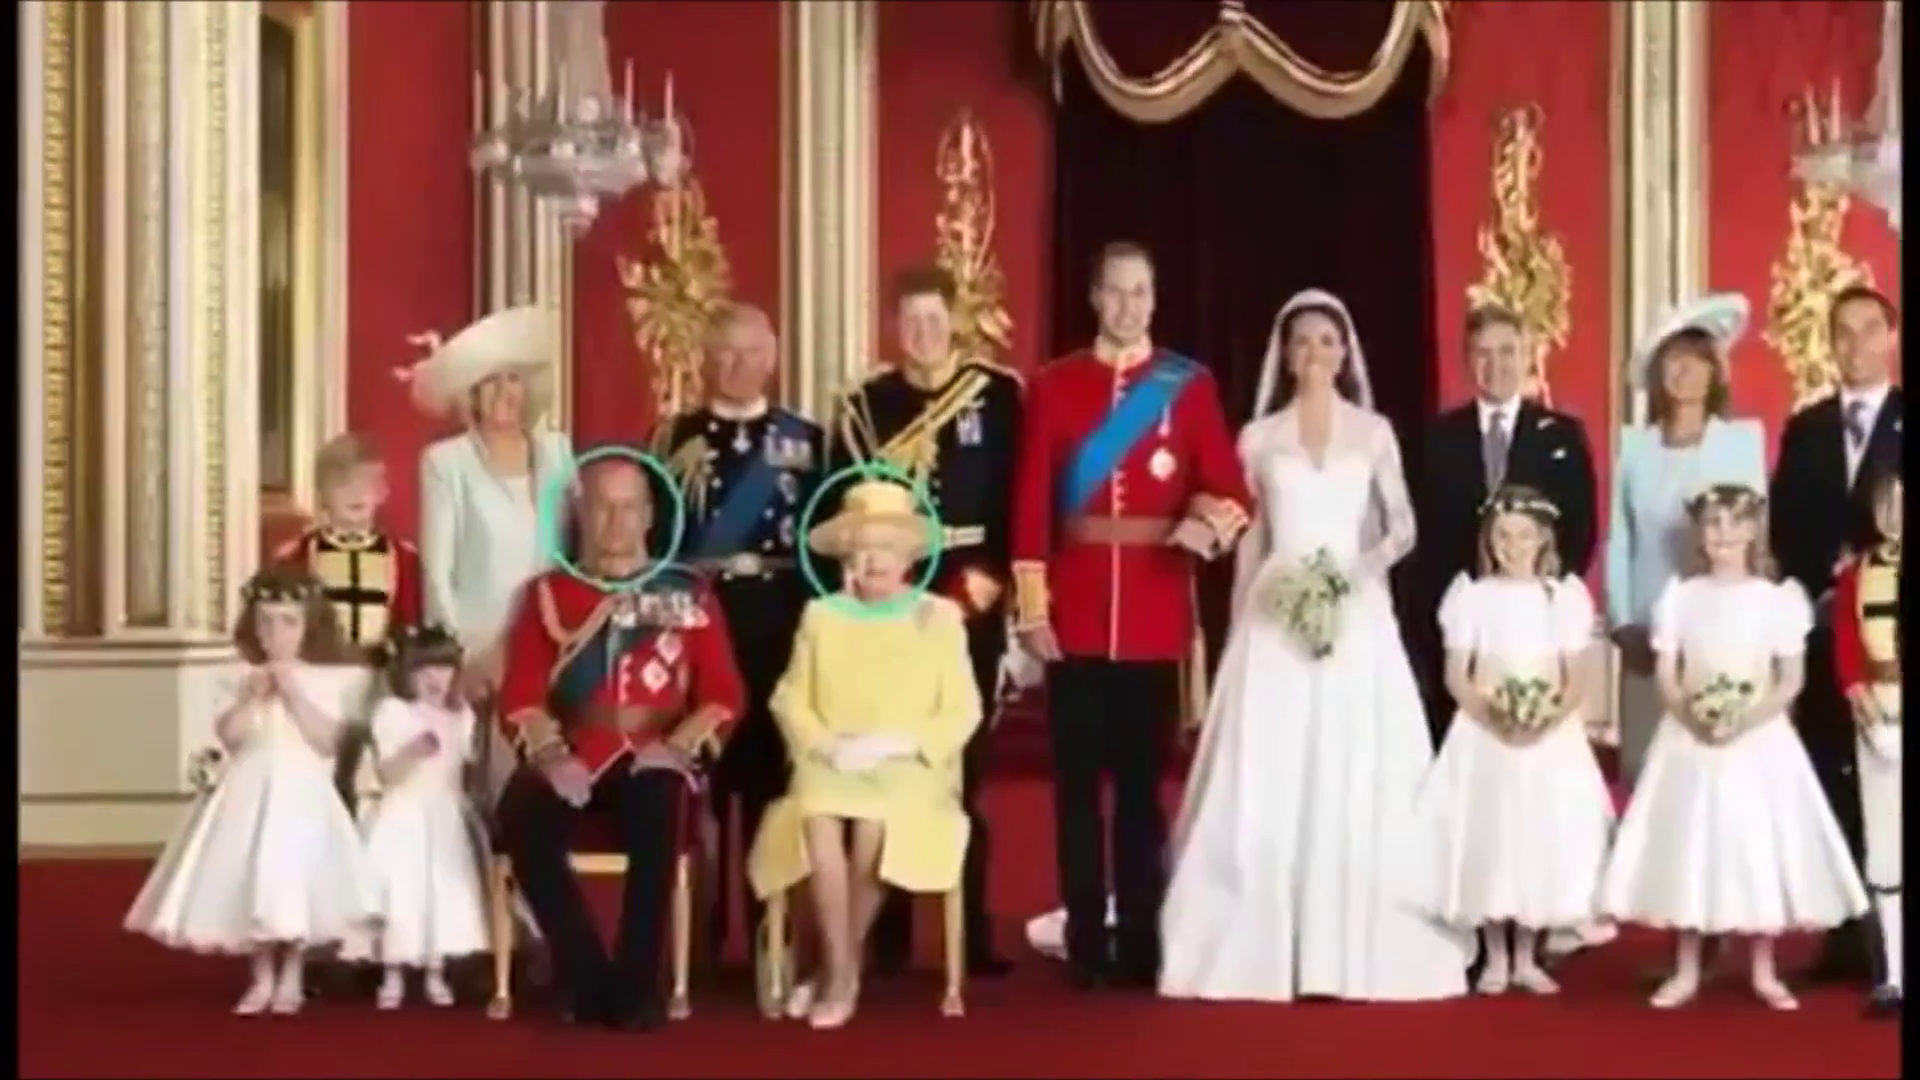 The Queen, Prince Philip  & The Kamloops Kidnapping 1964